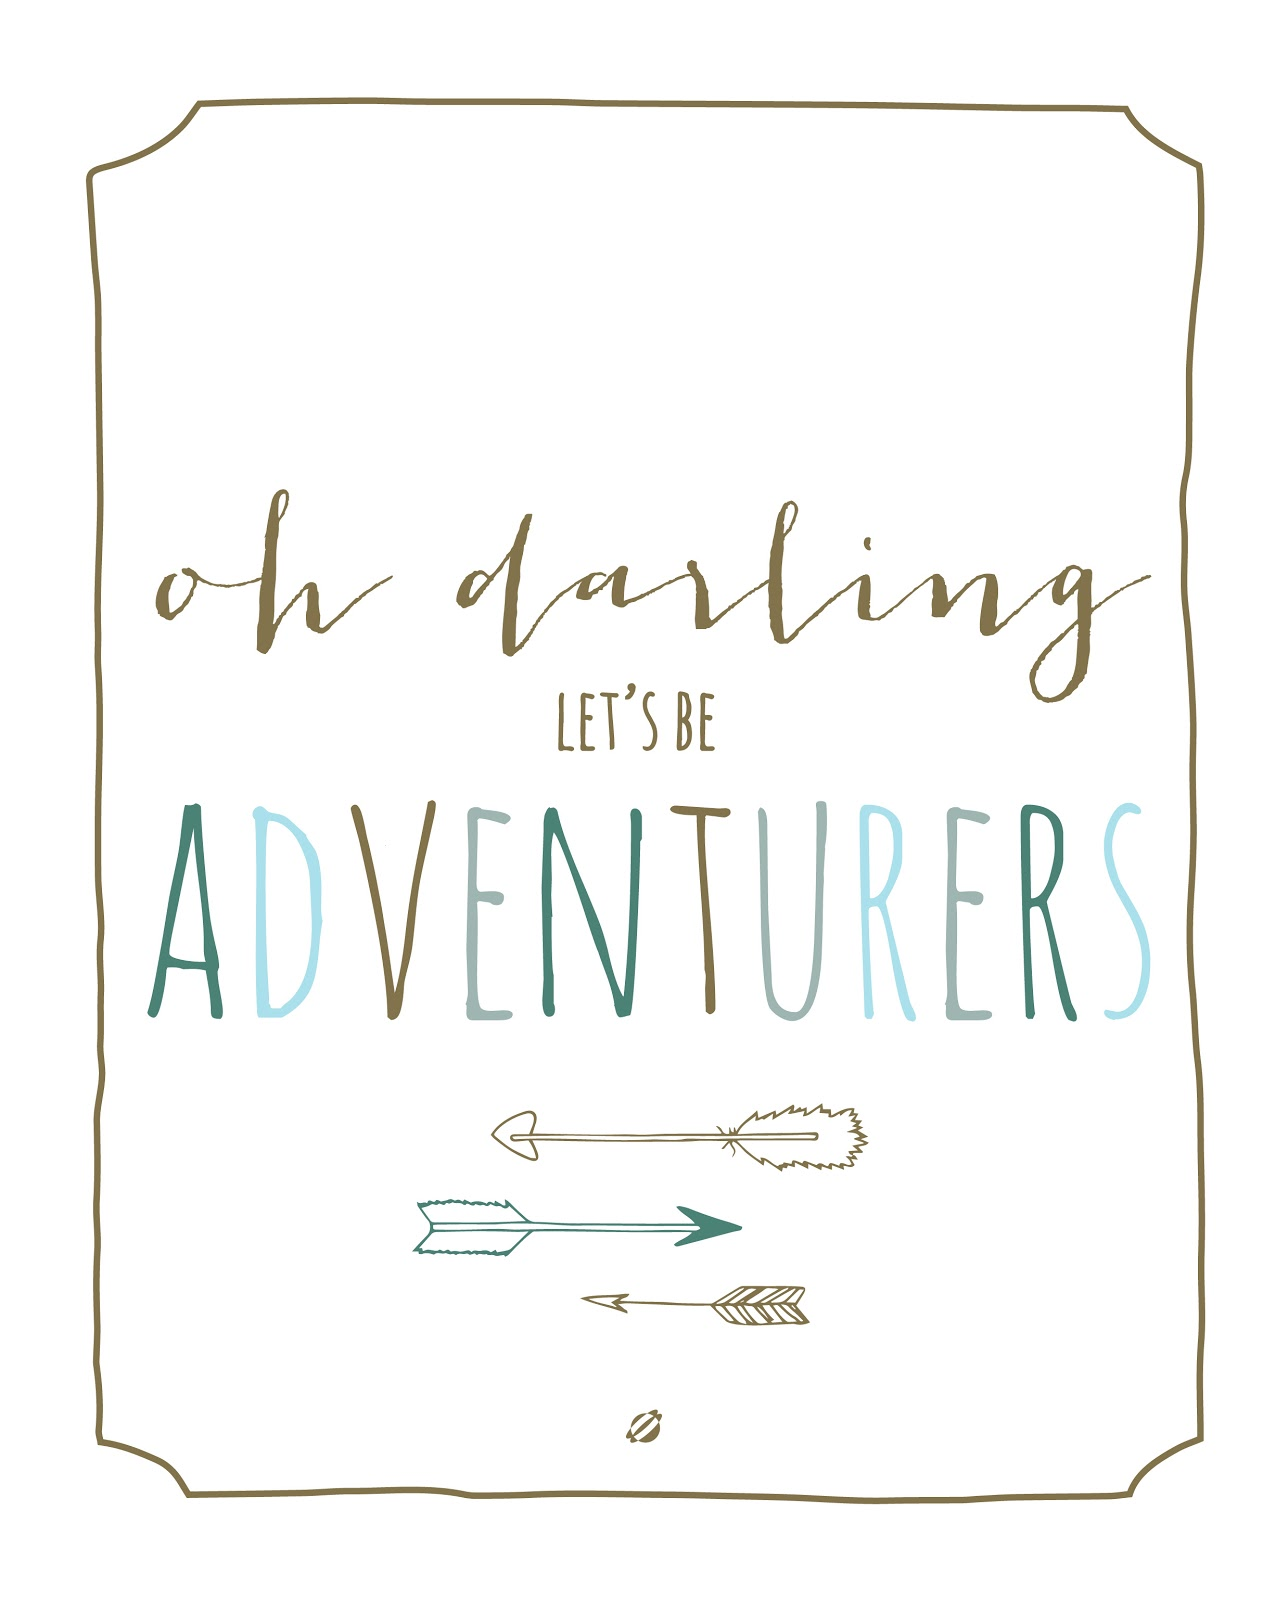 LostBumblebee ©2014 Let's Be Adventurers FREE PRINTABLE -PERSONAL USE ONLY